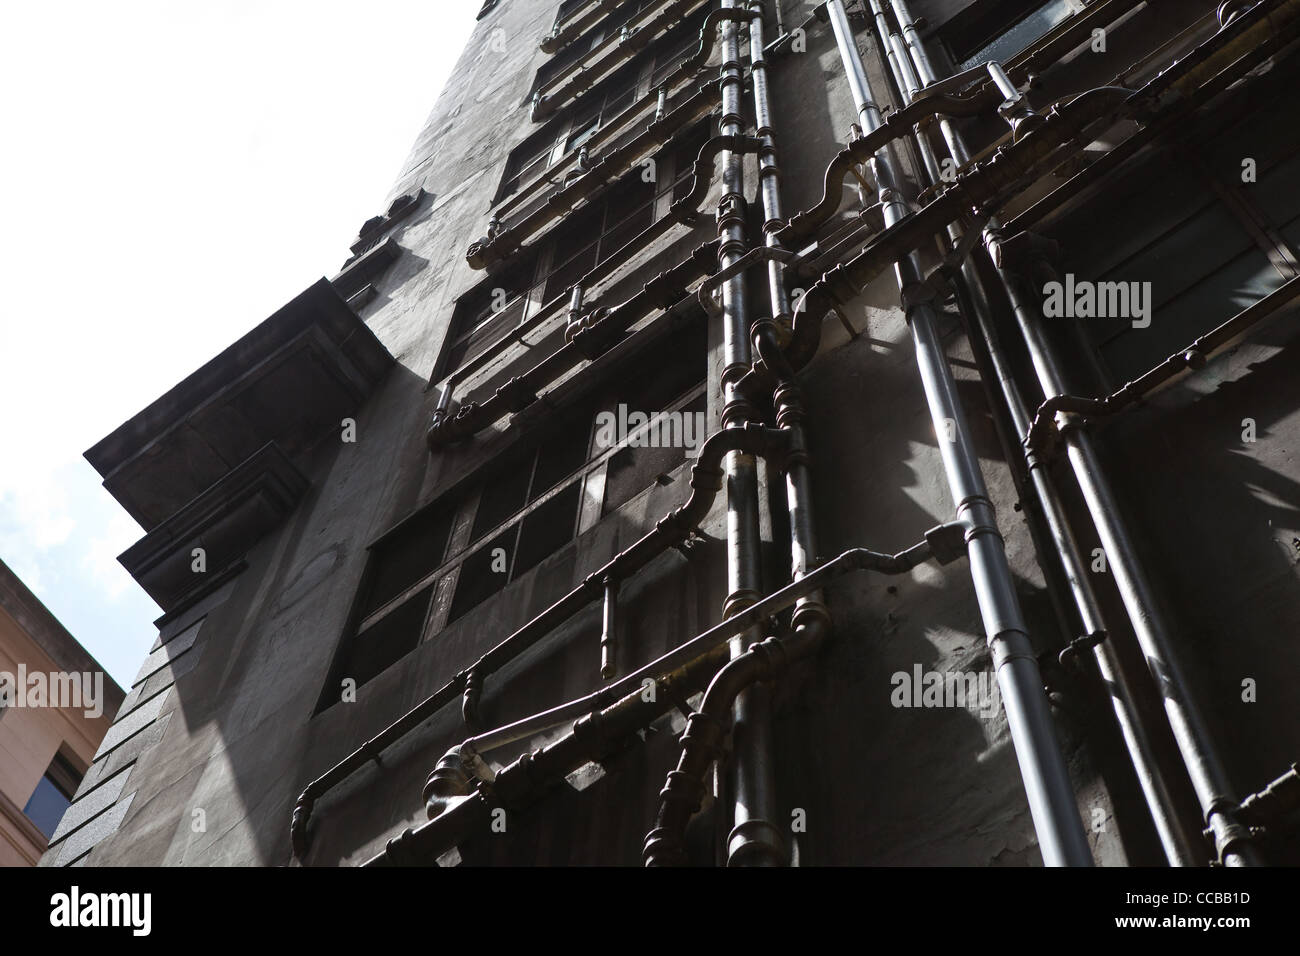 Industrial Pipes in Melbourne city buildings building - Stock Image